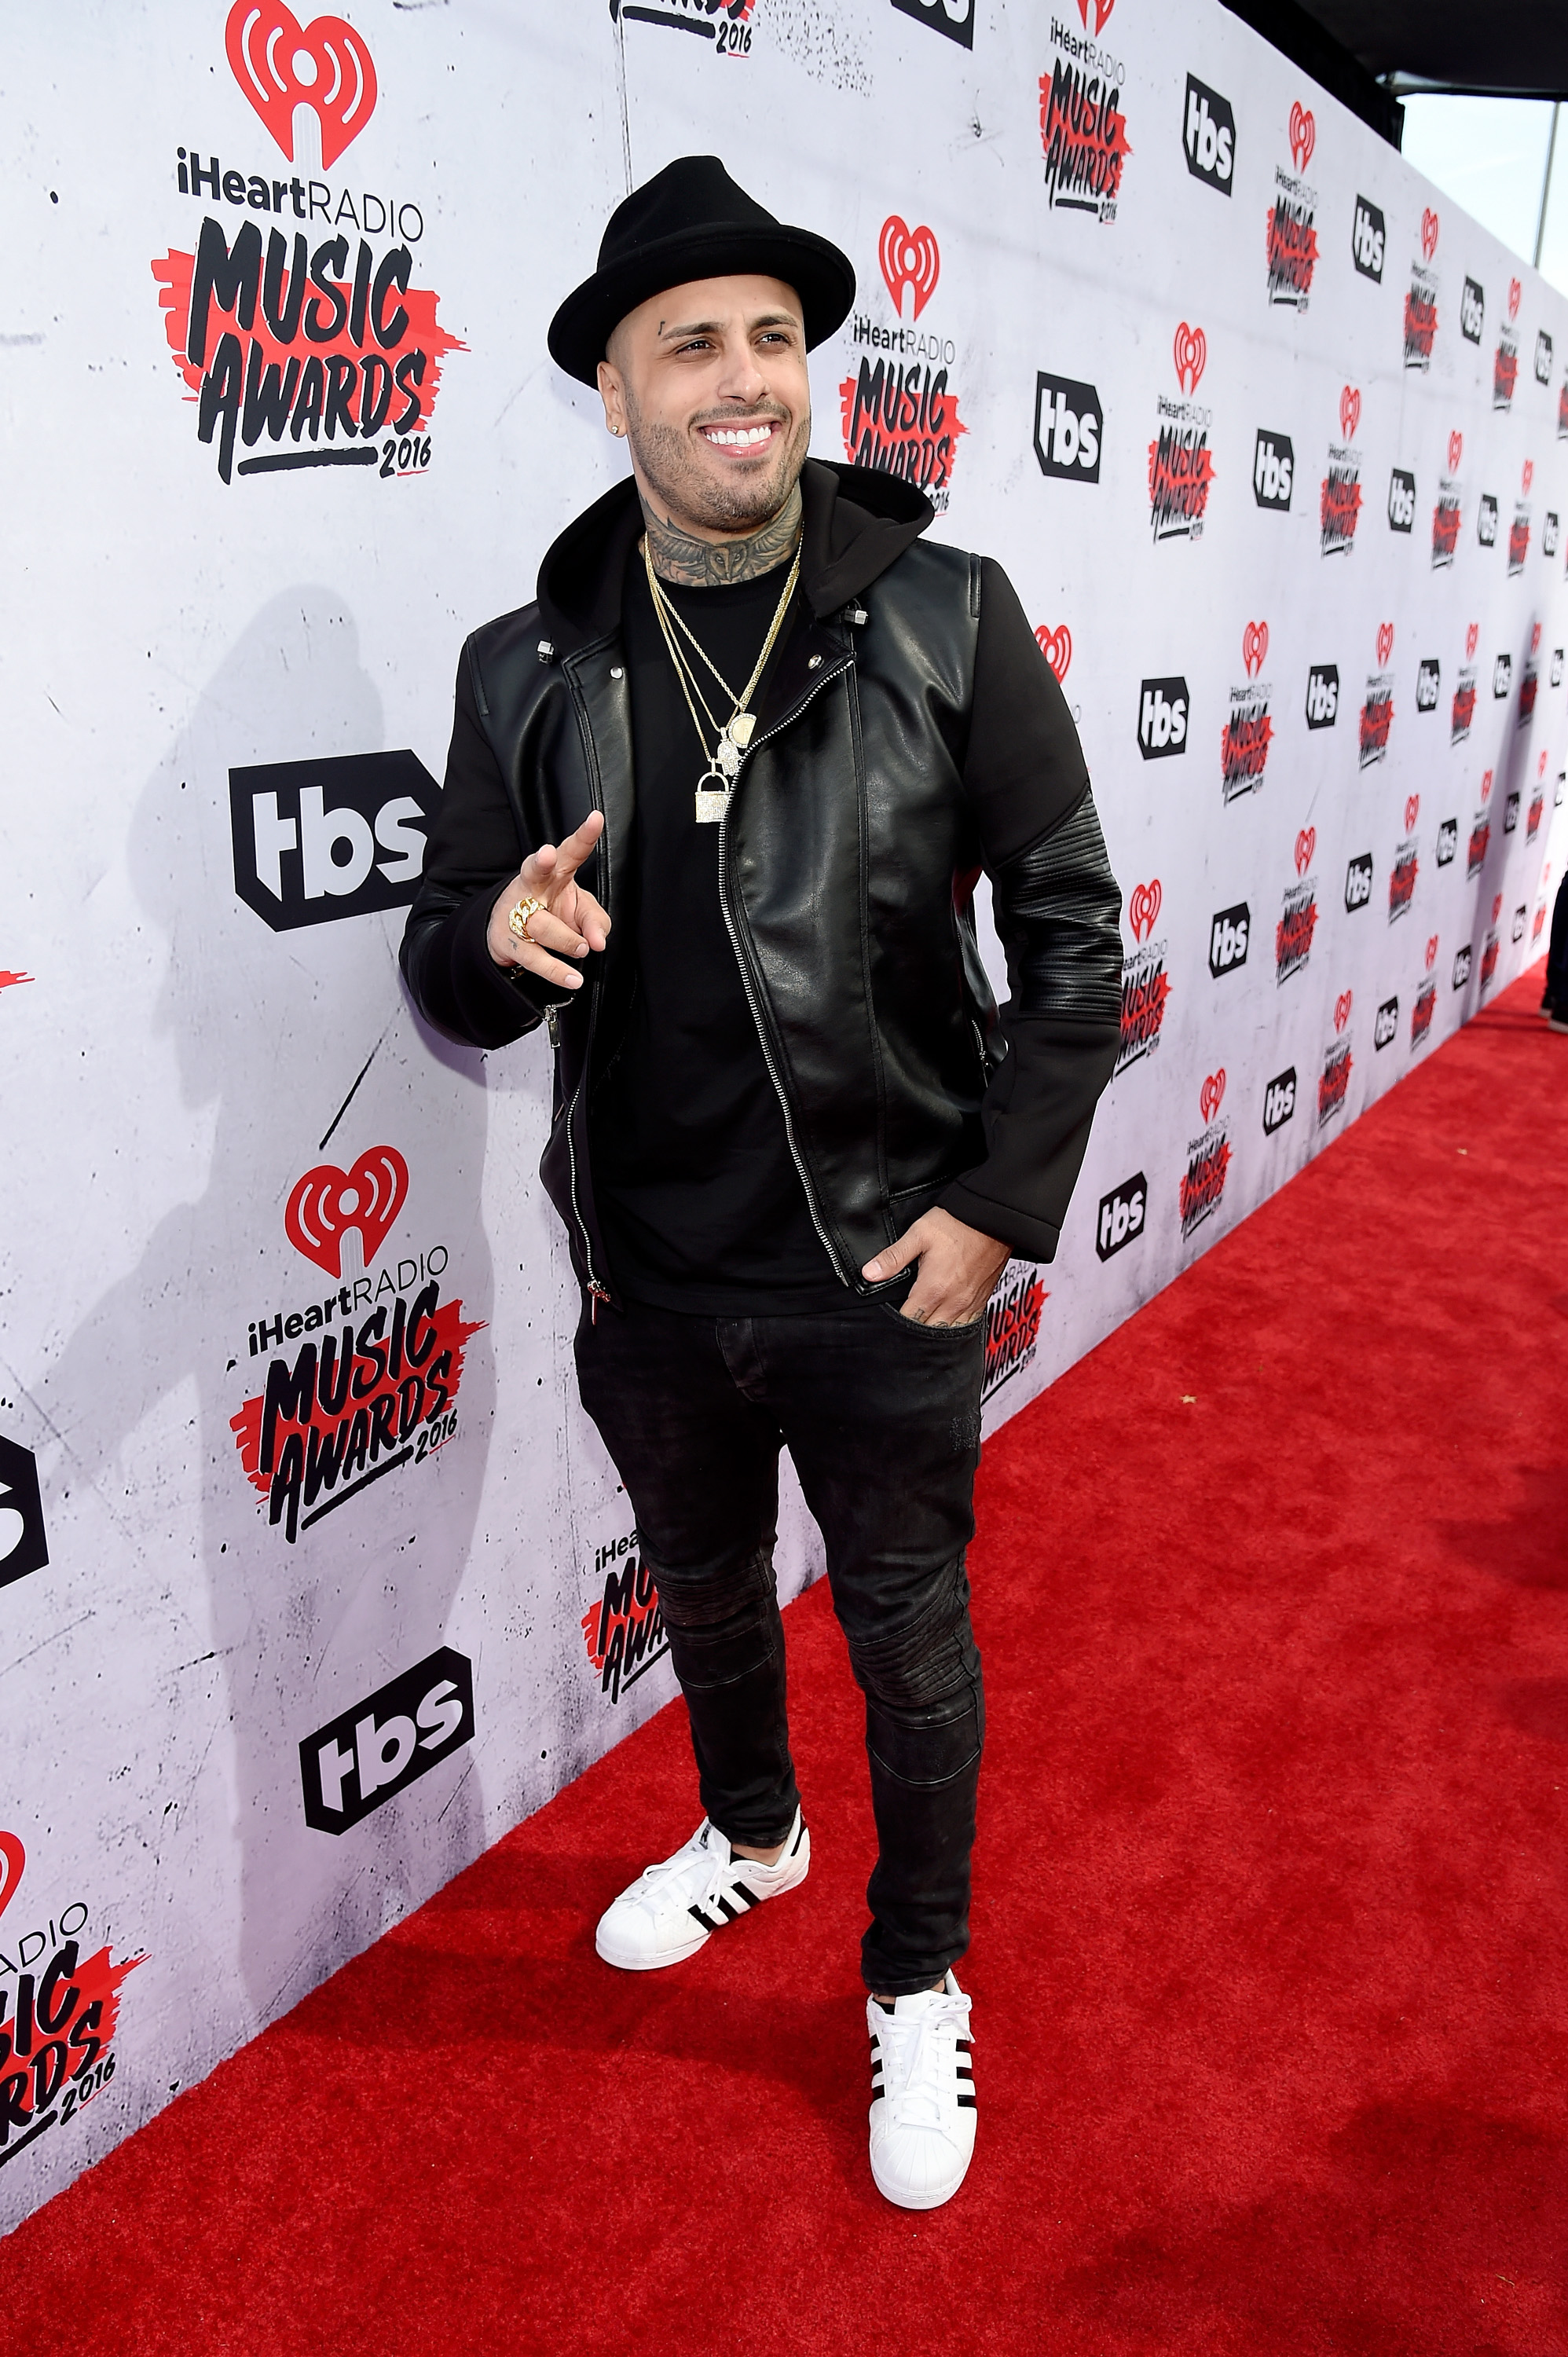 attends the iHeartRadio Music Awards at The Forum on April 3, 2016 in Inglewood, California.